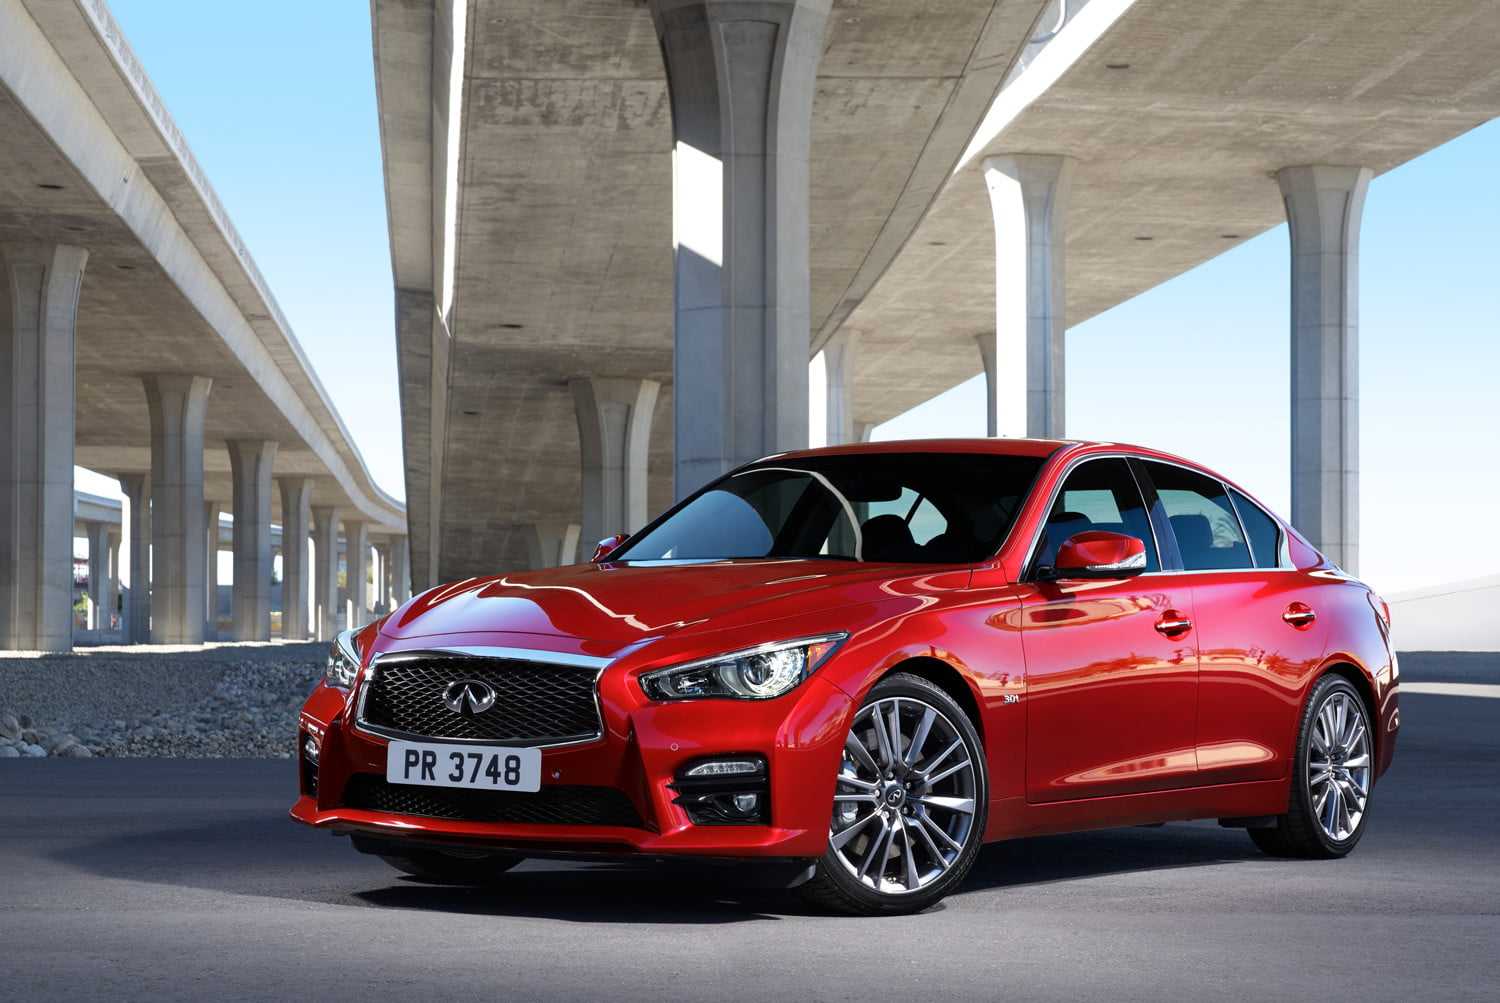 infiniti q50 coupe 2016. infiniti turns up the heat with a twinturbocharged 400hp version of q50 coupe 2016